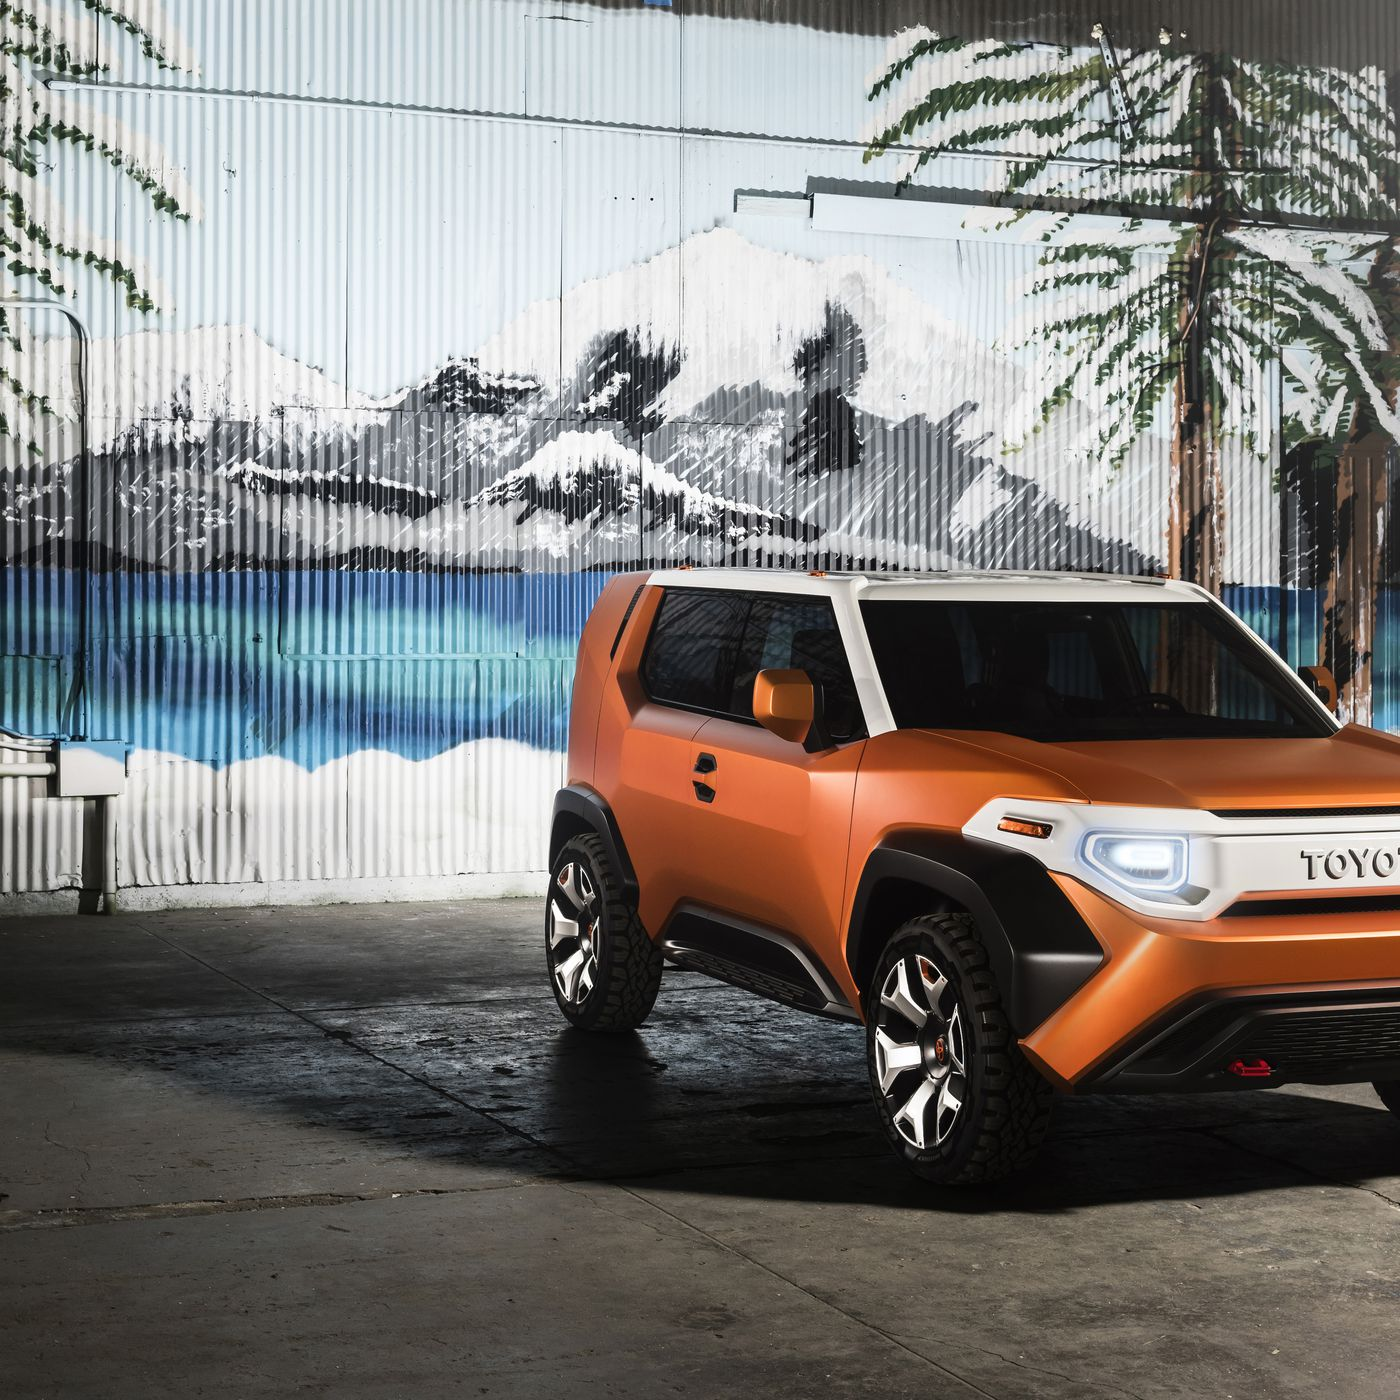 Toyota Ft 4X >> The Toyota Ft 4x Is A Big Orange Gearbox On Wheels The Verge